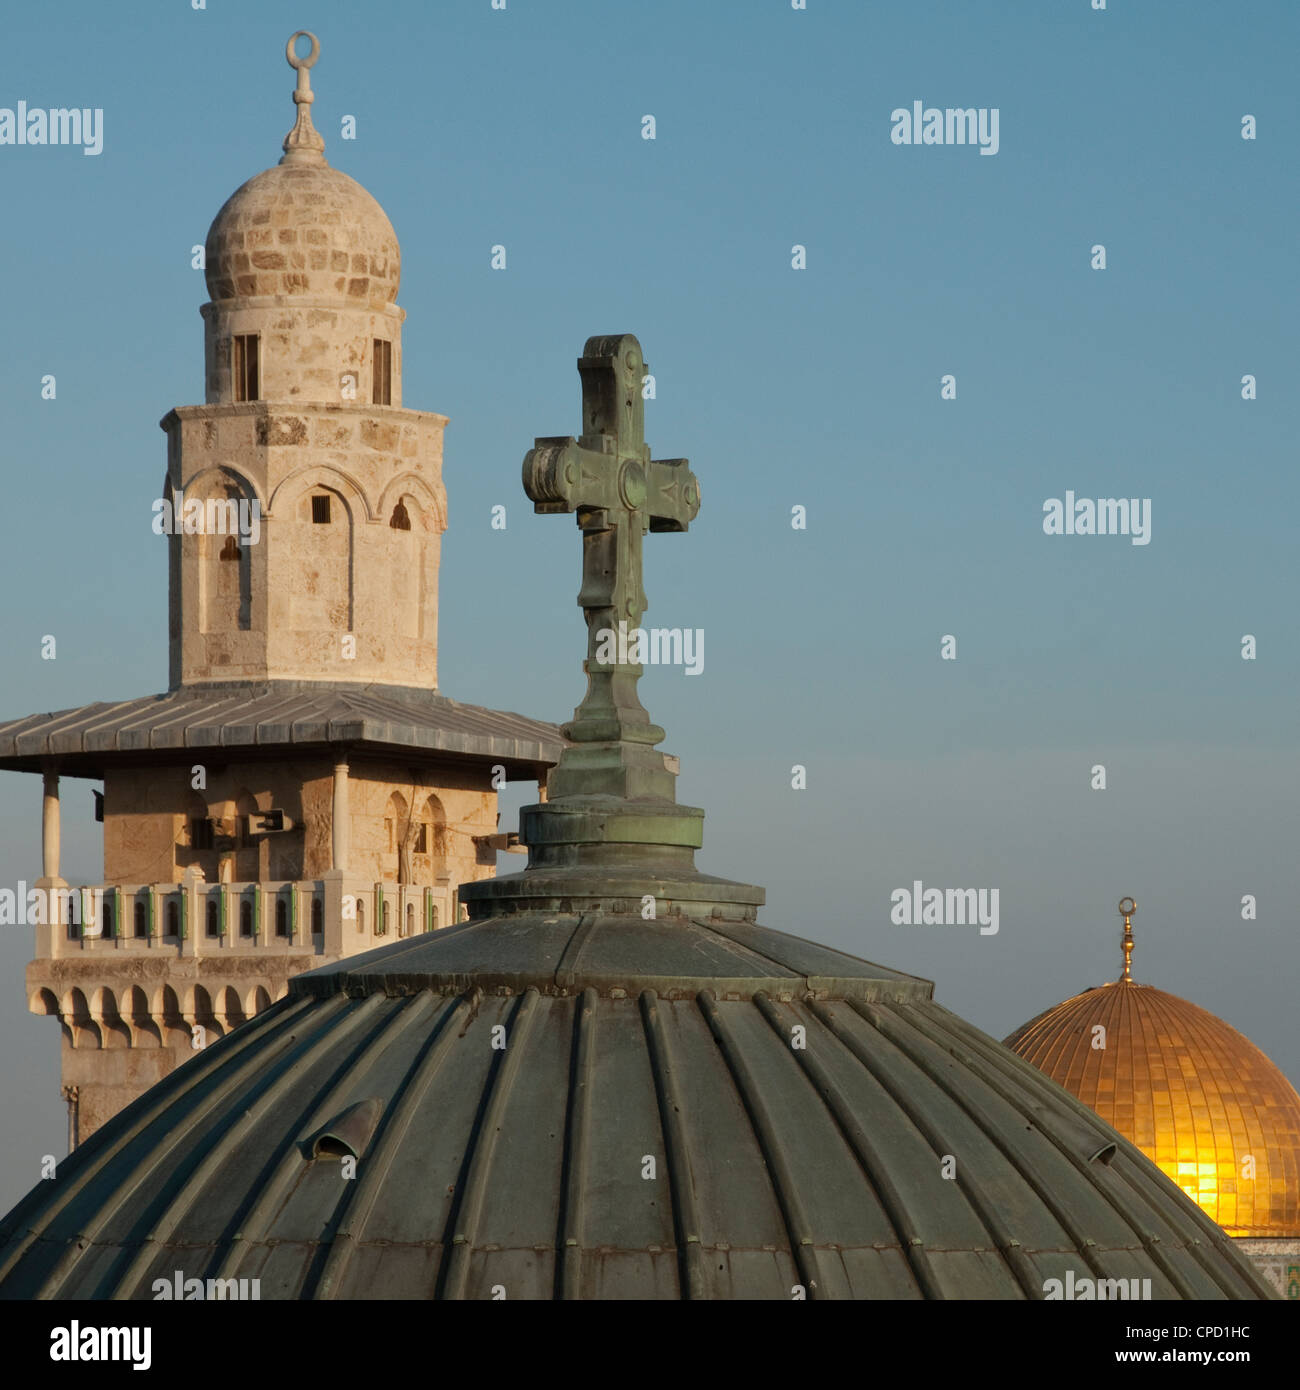 Ecce Homo dome, minaret and Dome of the Rock, Jerusalem, Israel, Middle East - Stock Image